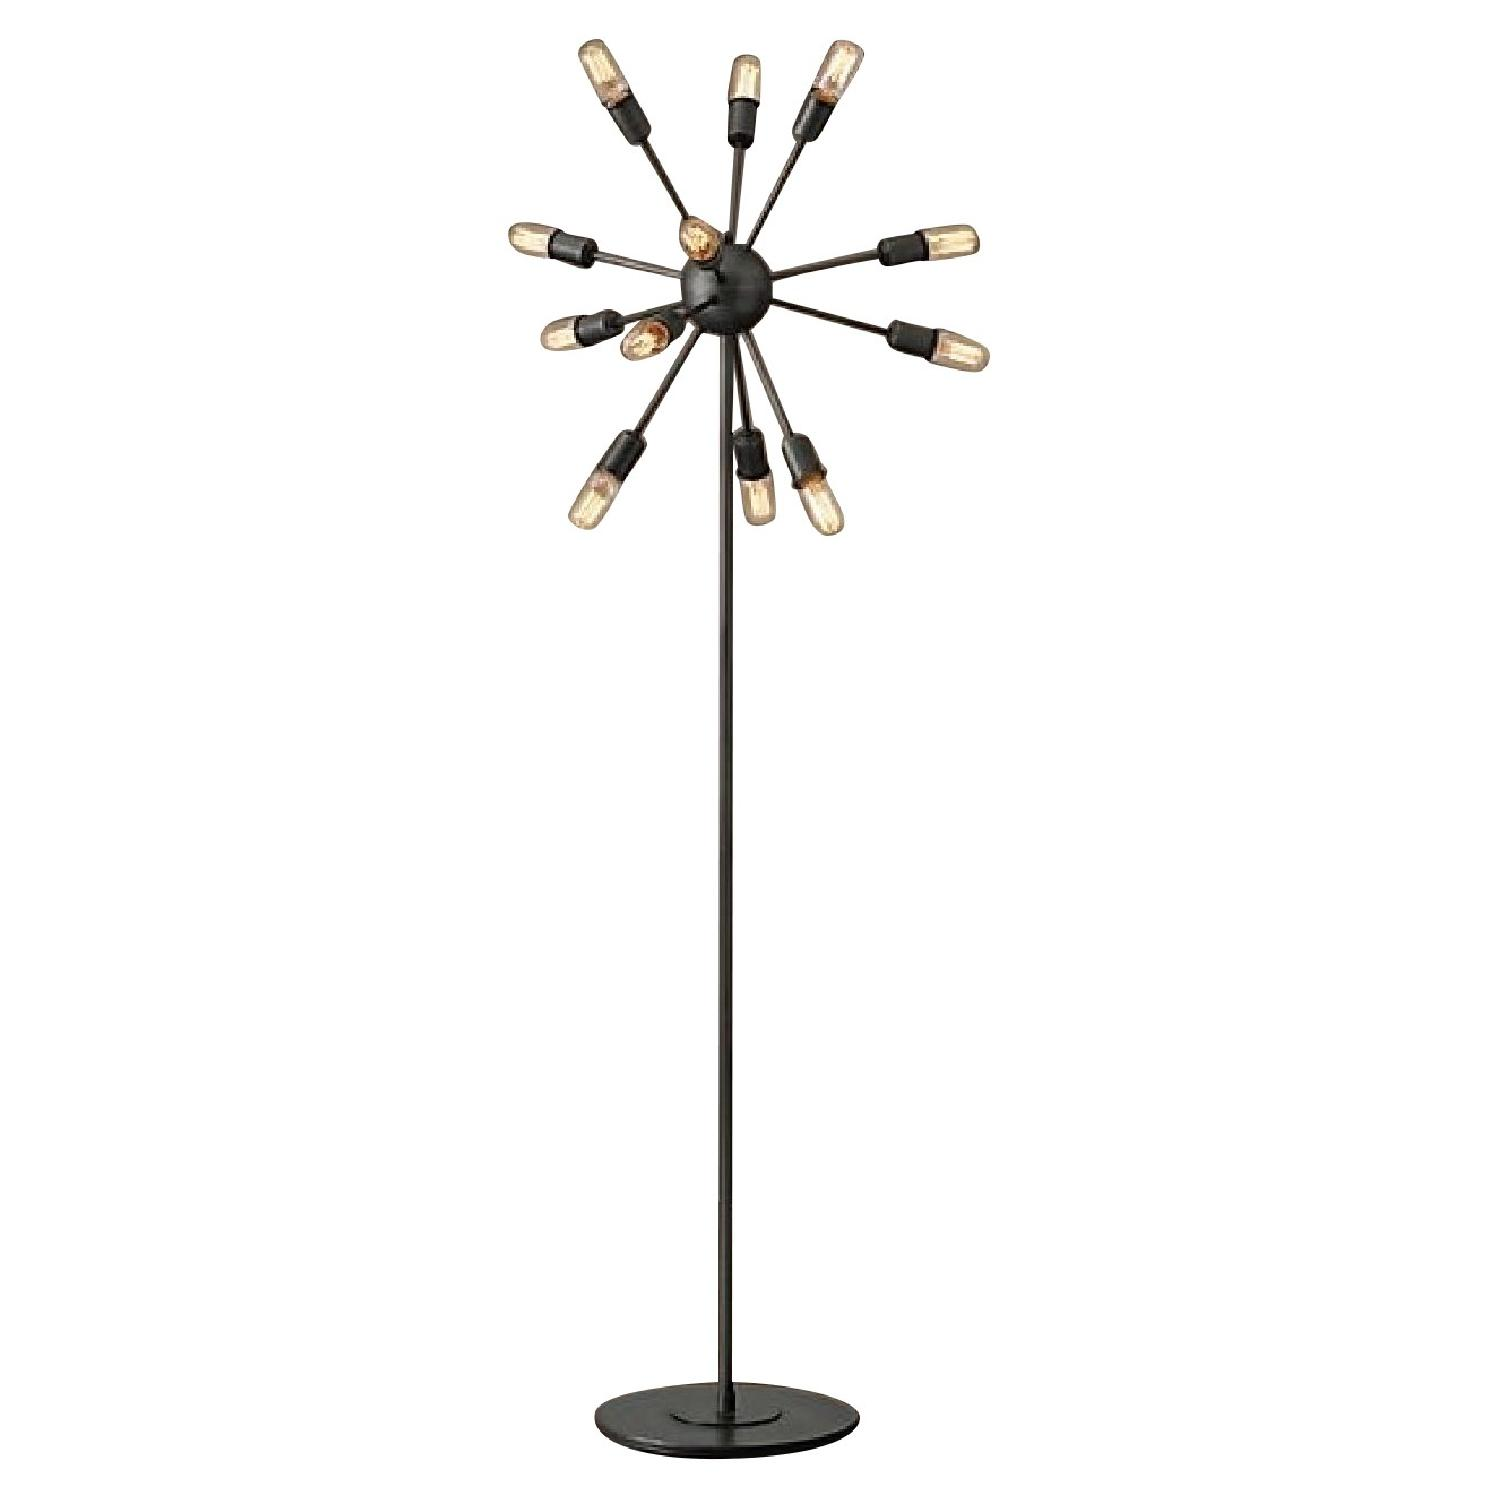 Restoration Hardware Sputnik Filament Floor Lamp